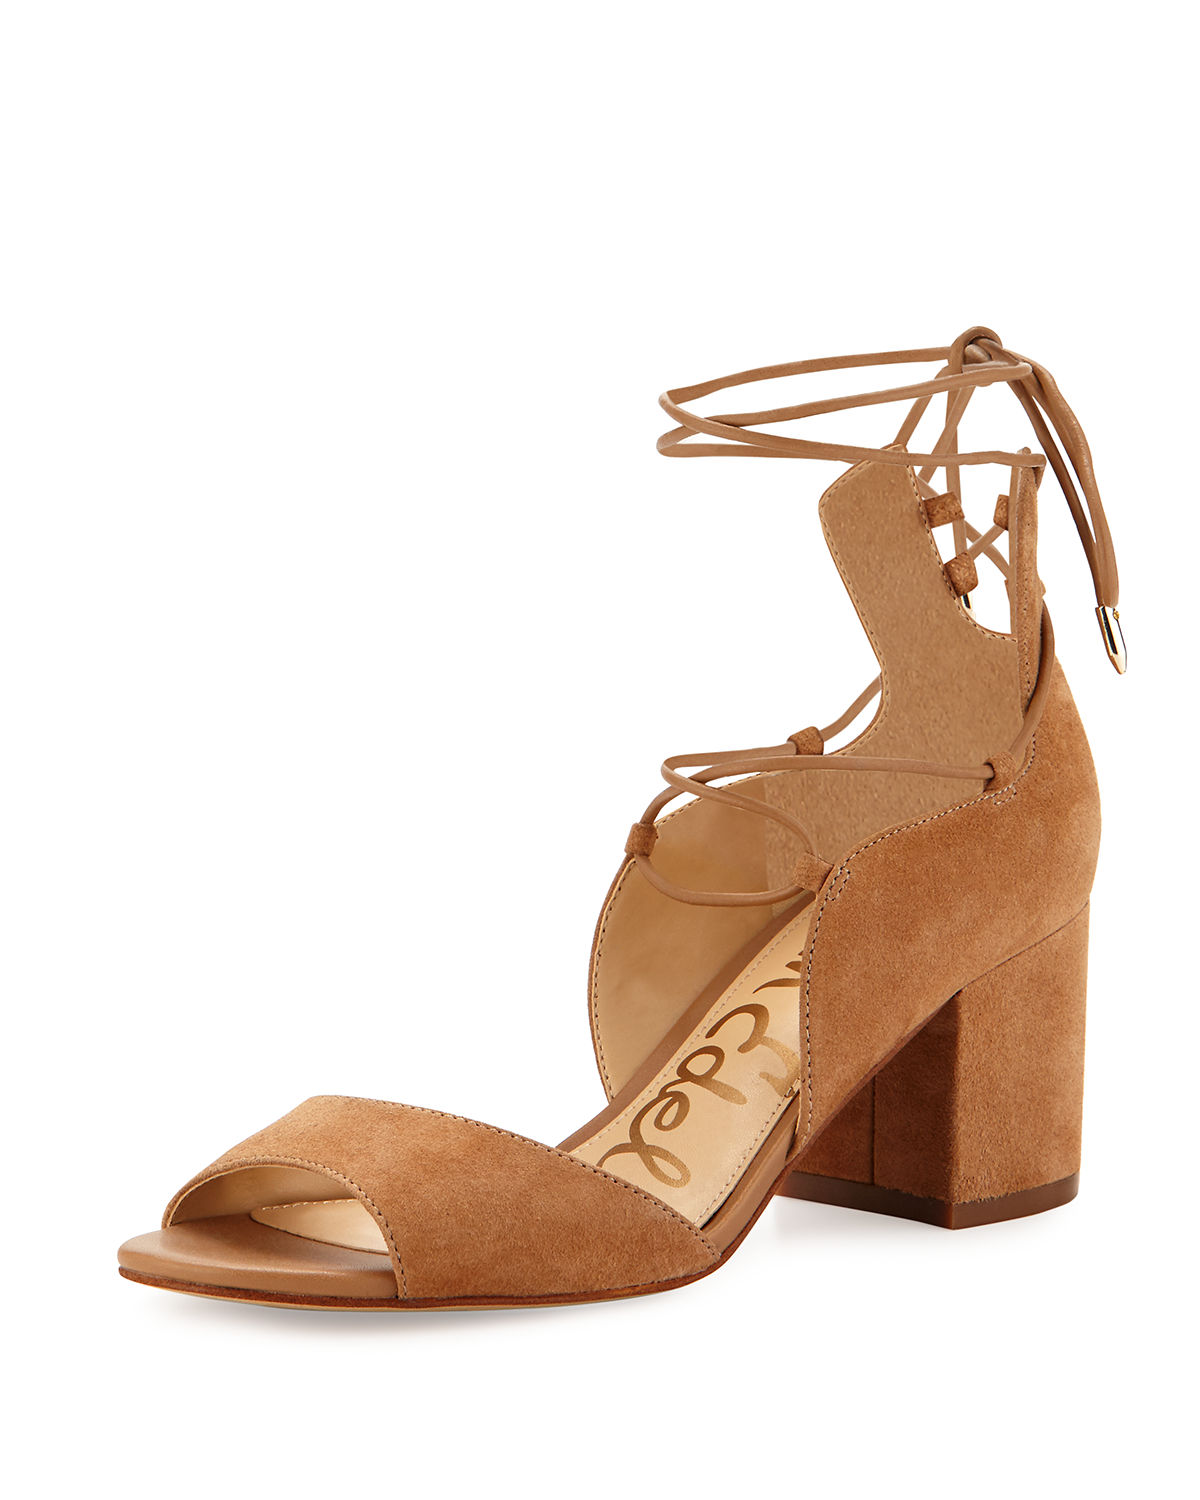 Serene Suede Lace-Up Sandal, Brown